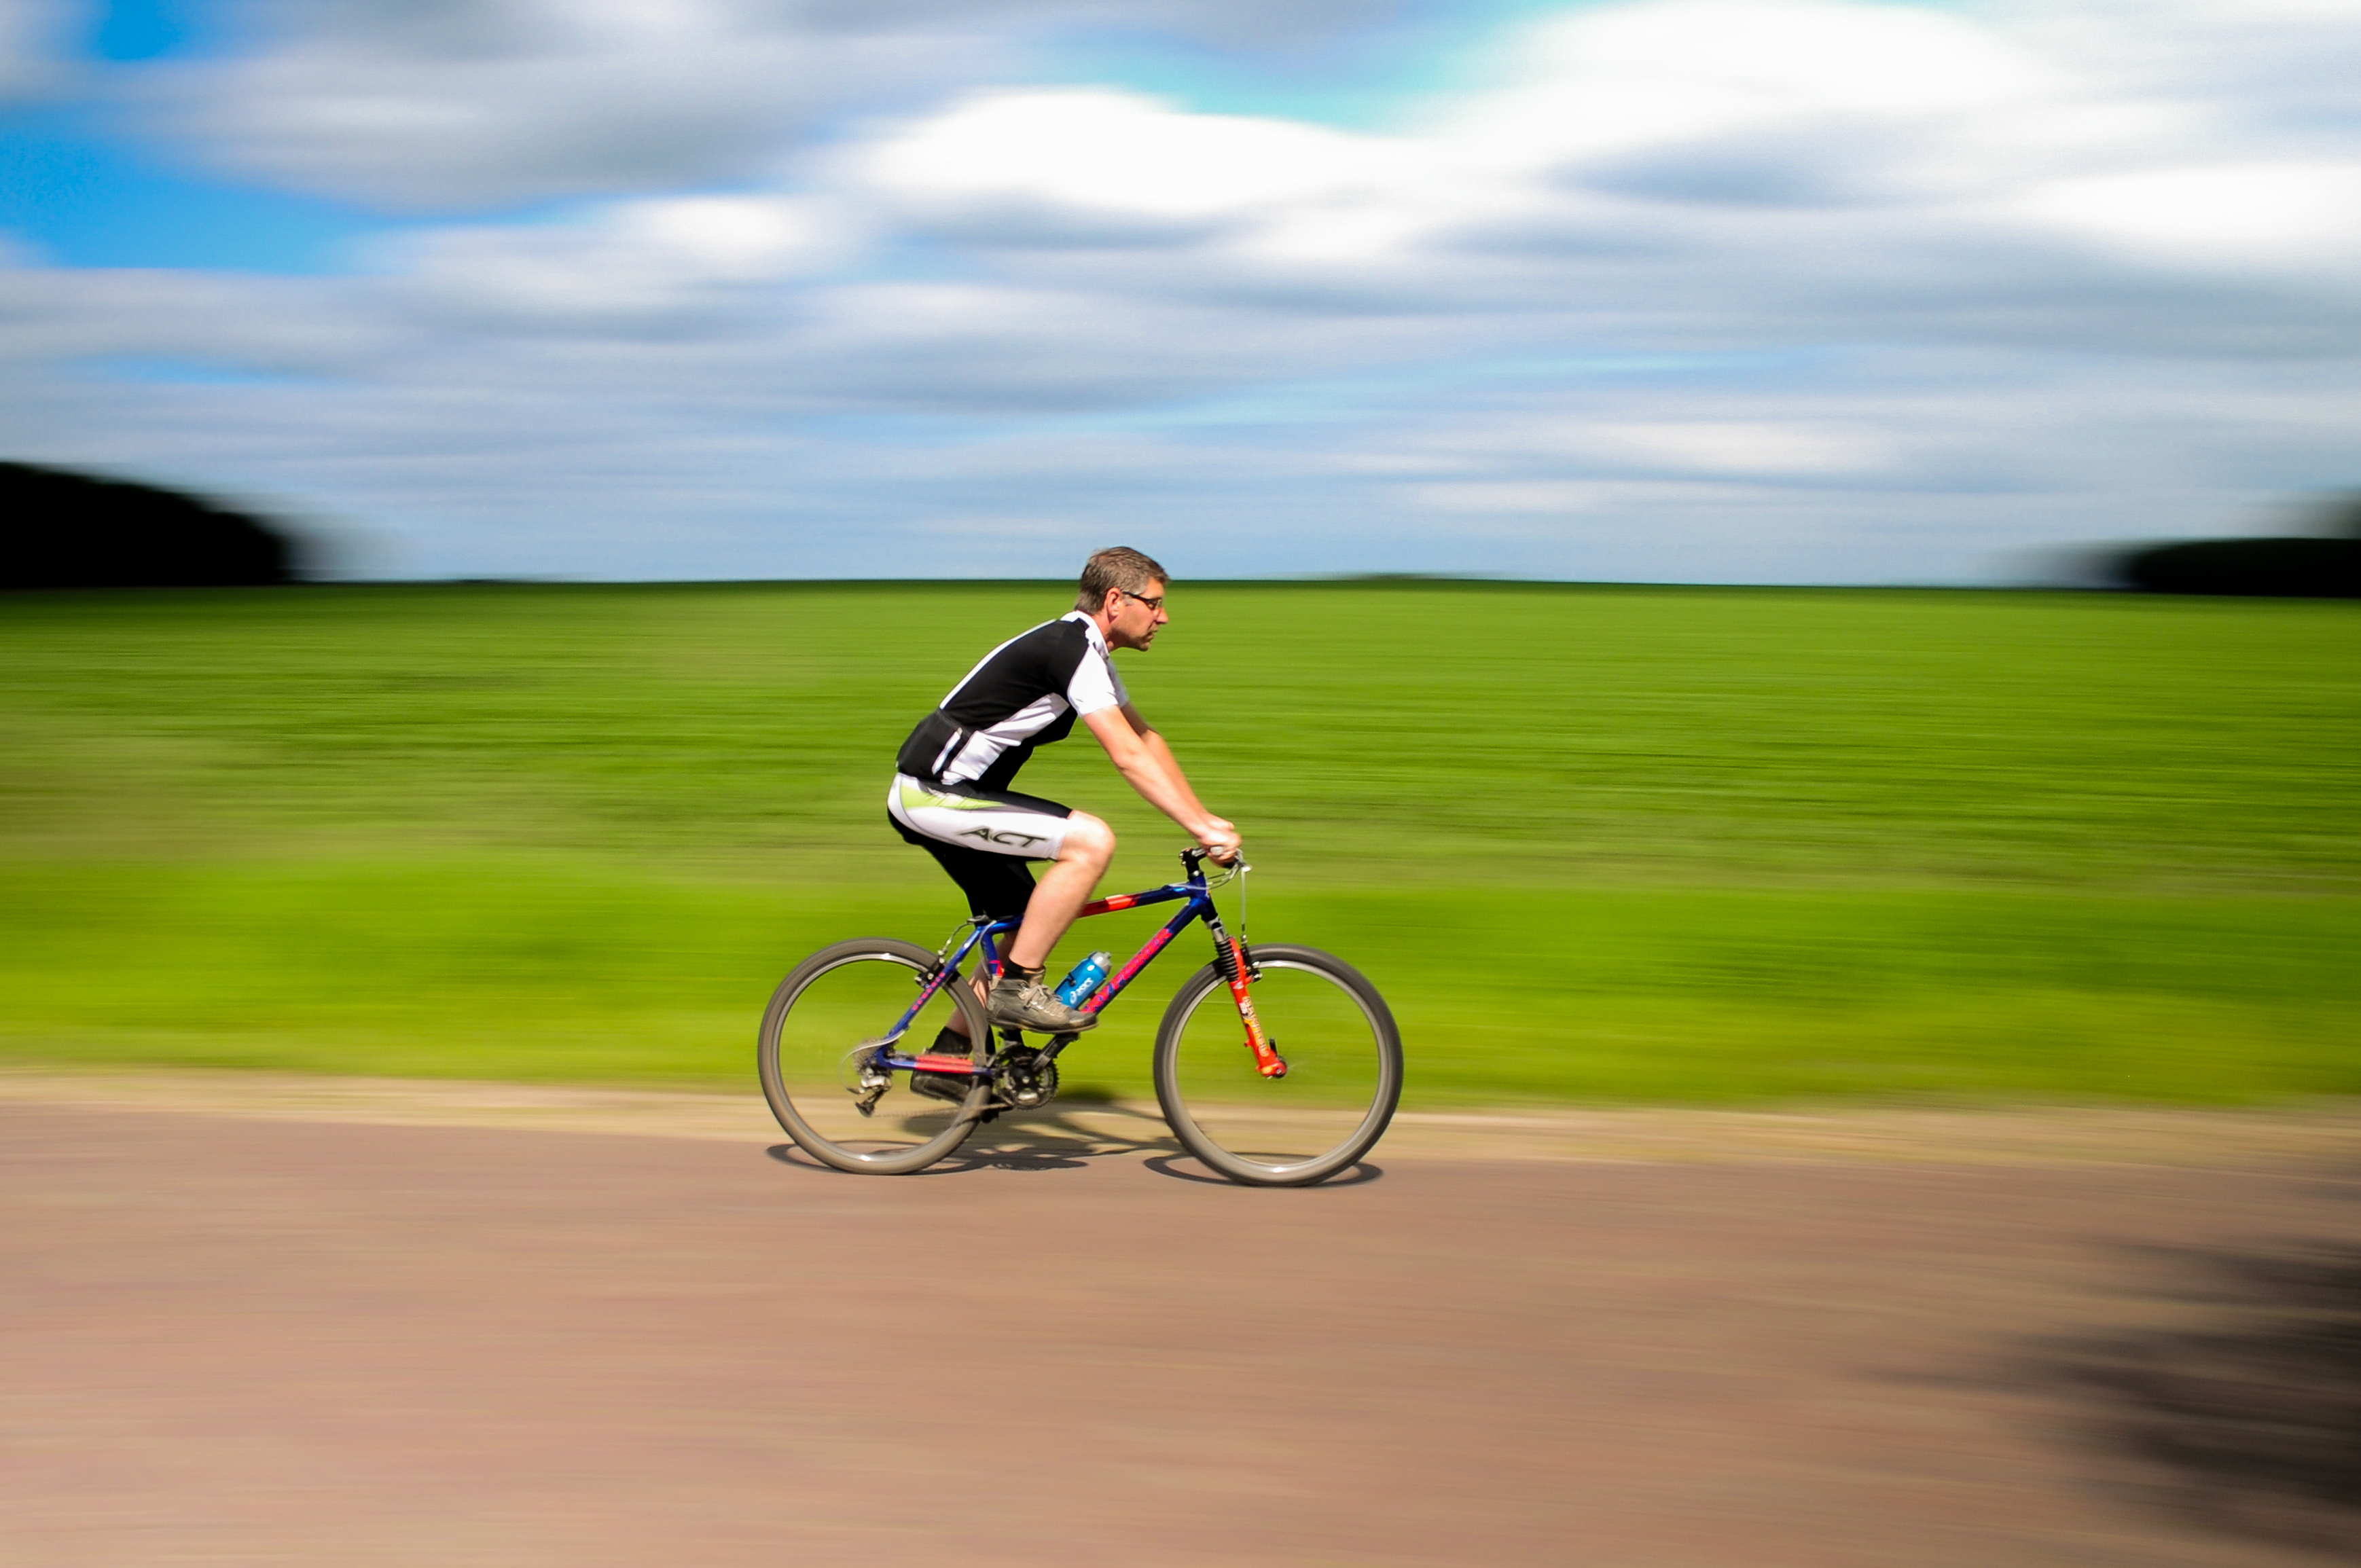 person-sport-bike-bicycle